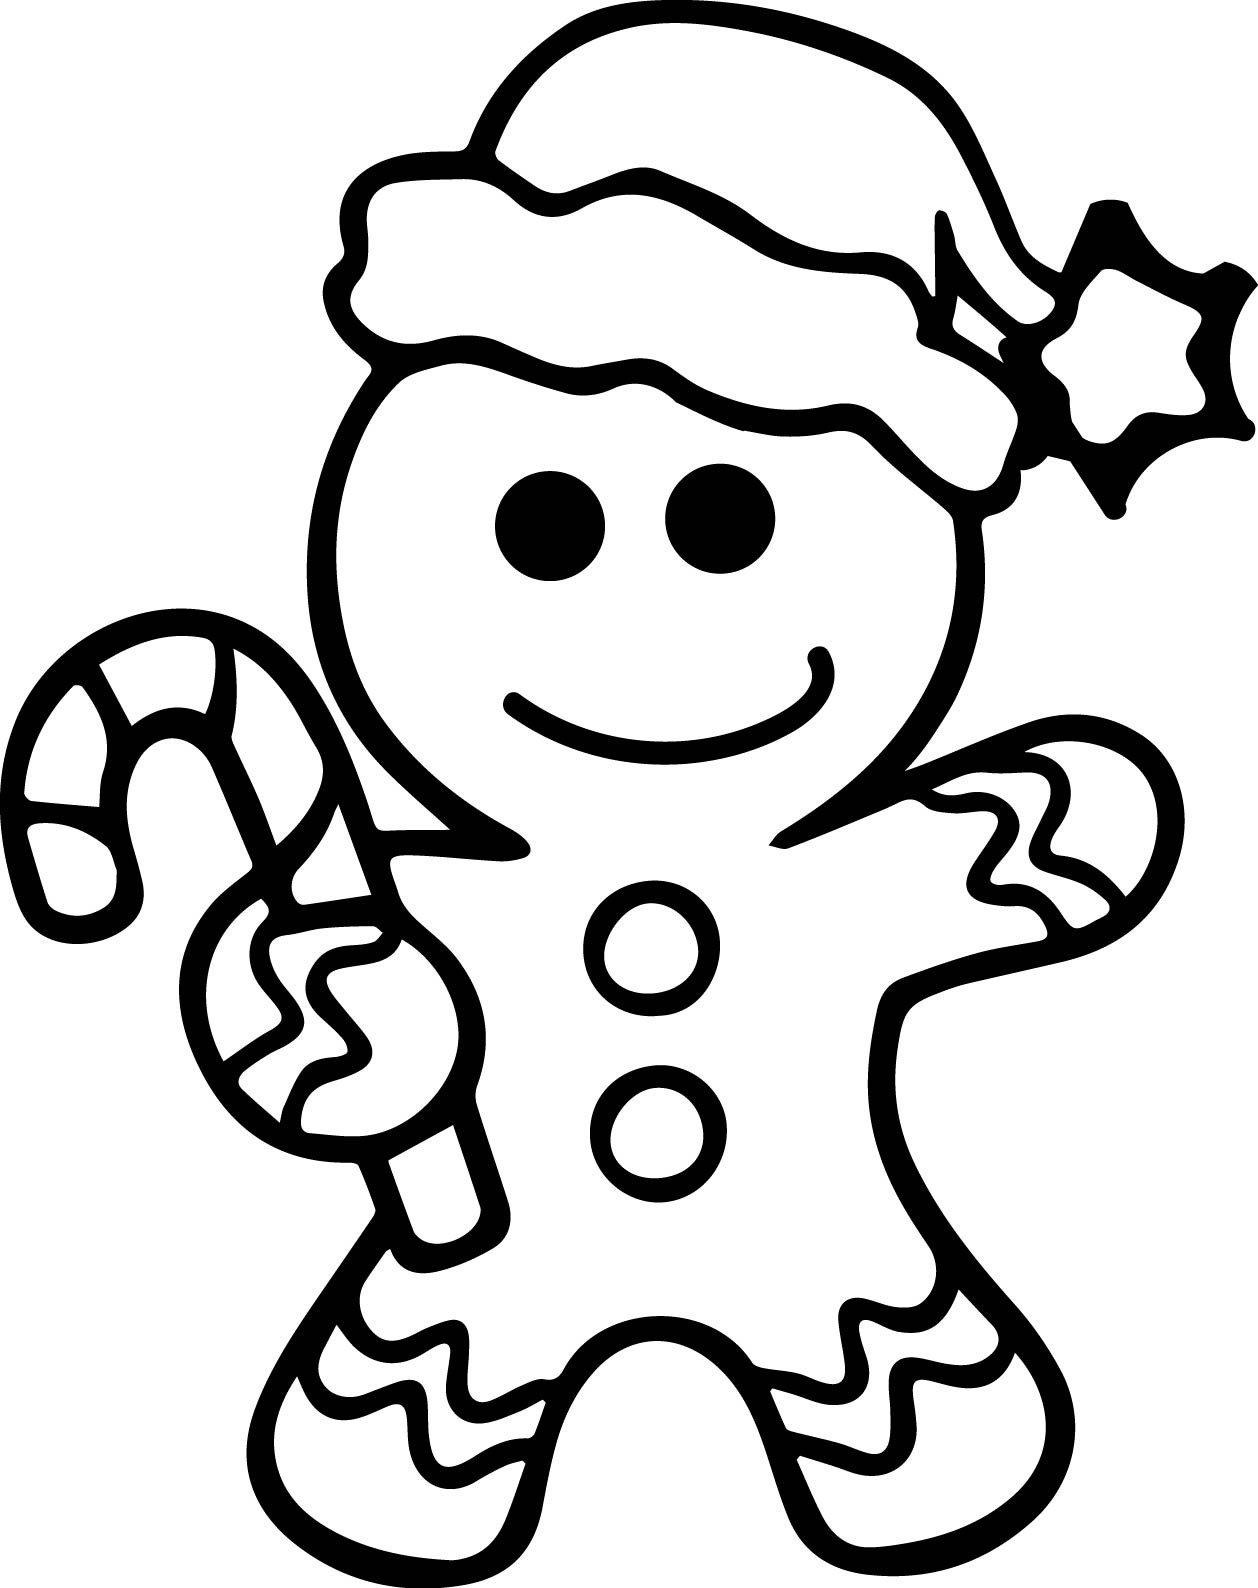 gingerbread man coloring free printable gingerbread man coloring pages for kids gingerbread man coloring